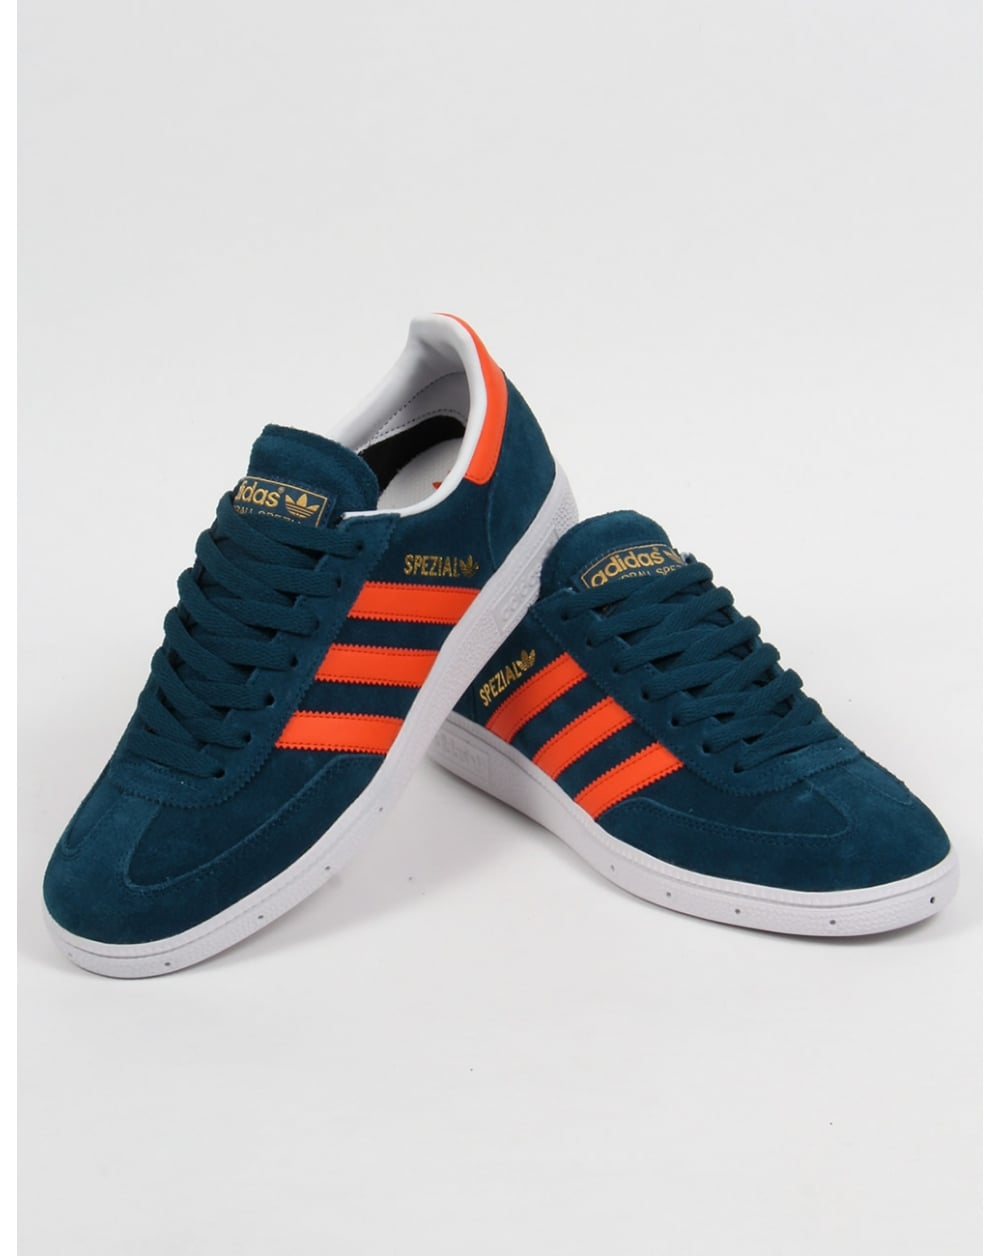 16 Best adidas dragon images | Mens trainers, Adidas, Blue